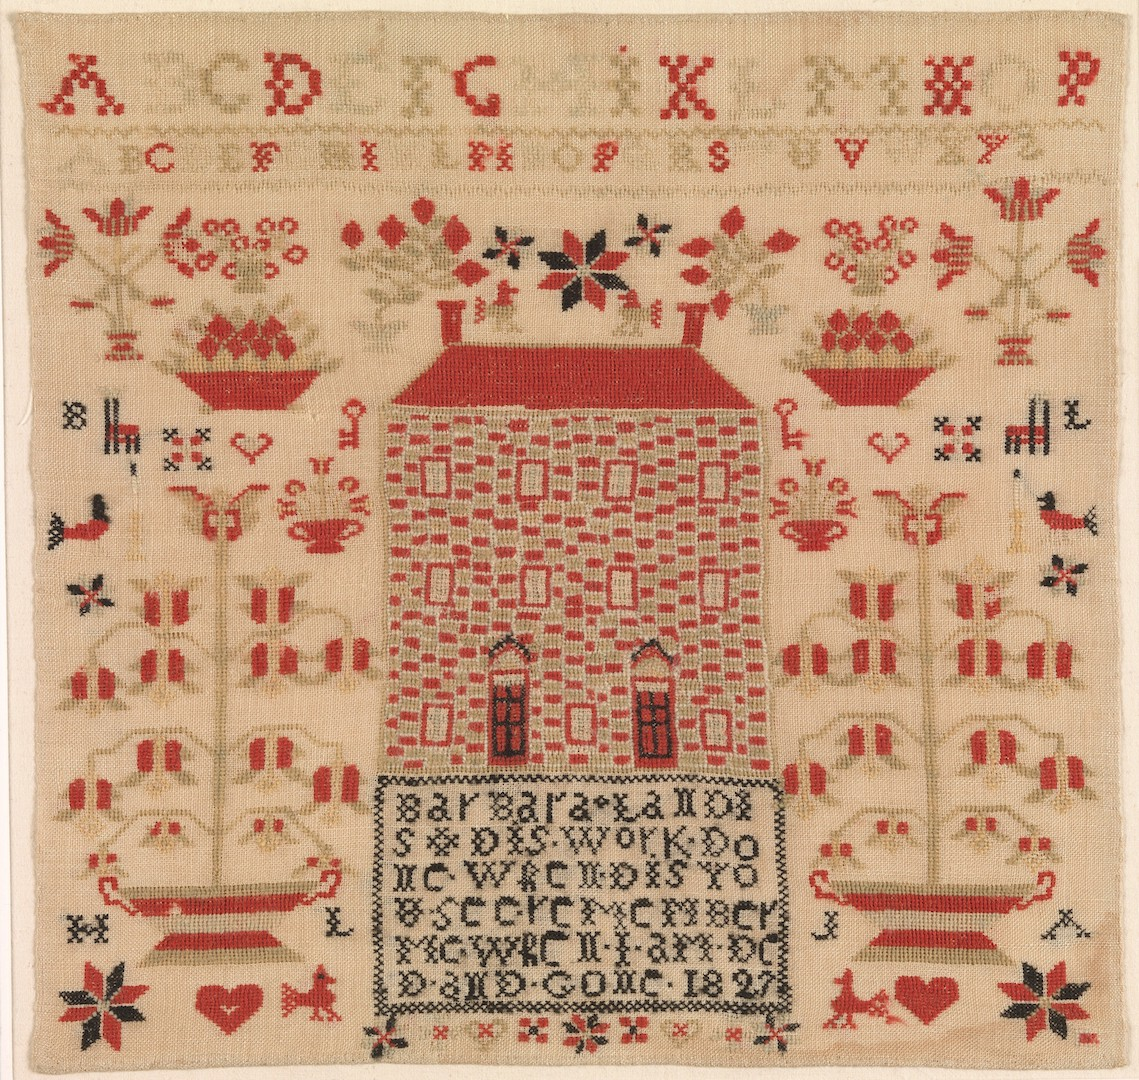 An American/German sampler from 1827, worked by Barbara Landis (USA; Gift of Mrs. Robert W. de Forest, 1933, courtesy of the Metropolitan Museum of Art, MMA 34.100.209).